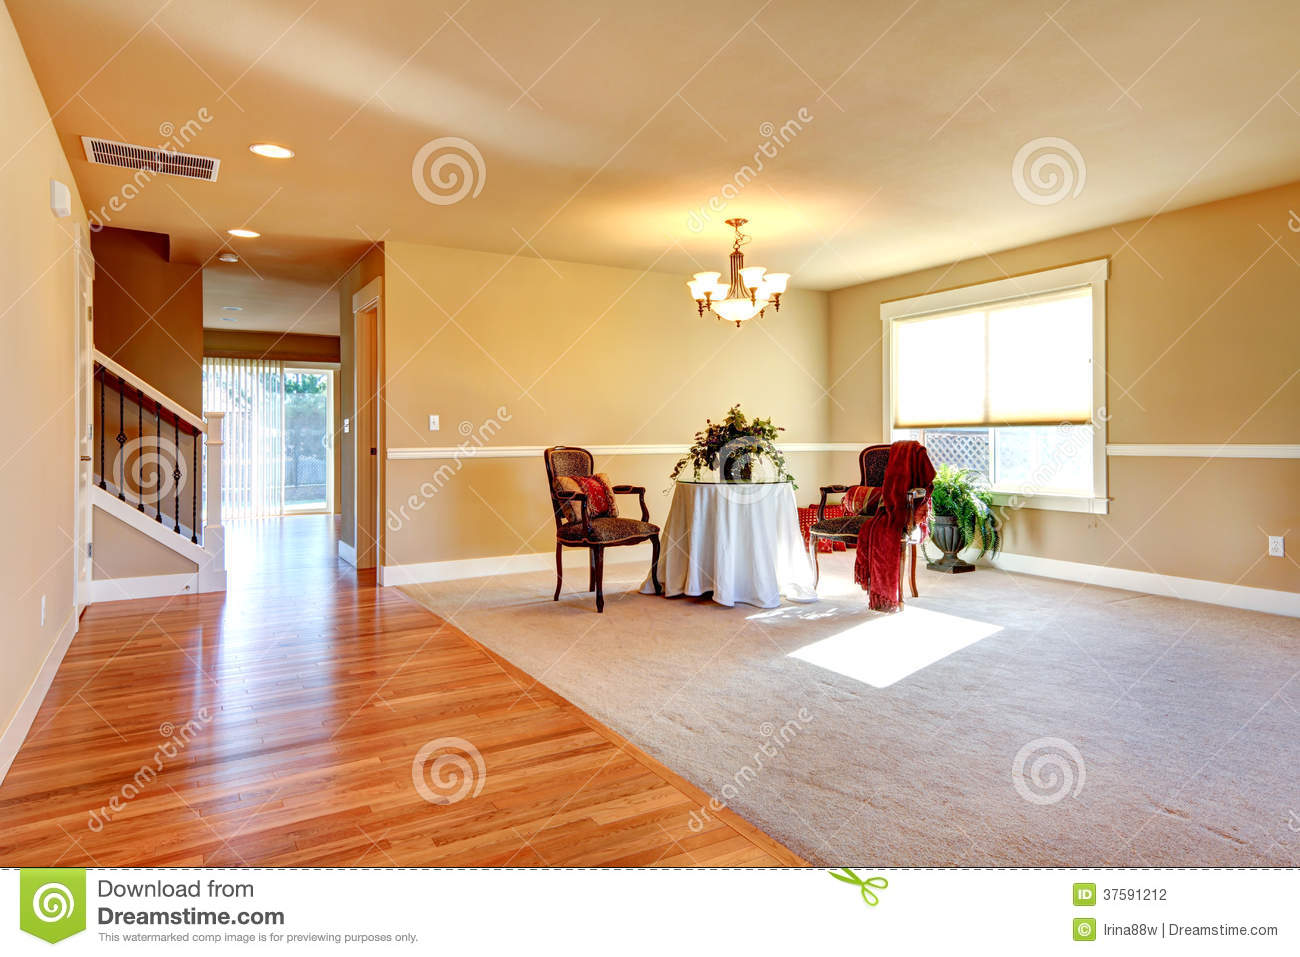 Royalty Free Stock Photo Download Open Plan Design Entrance Hallway And Living Room